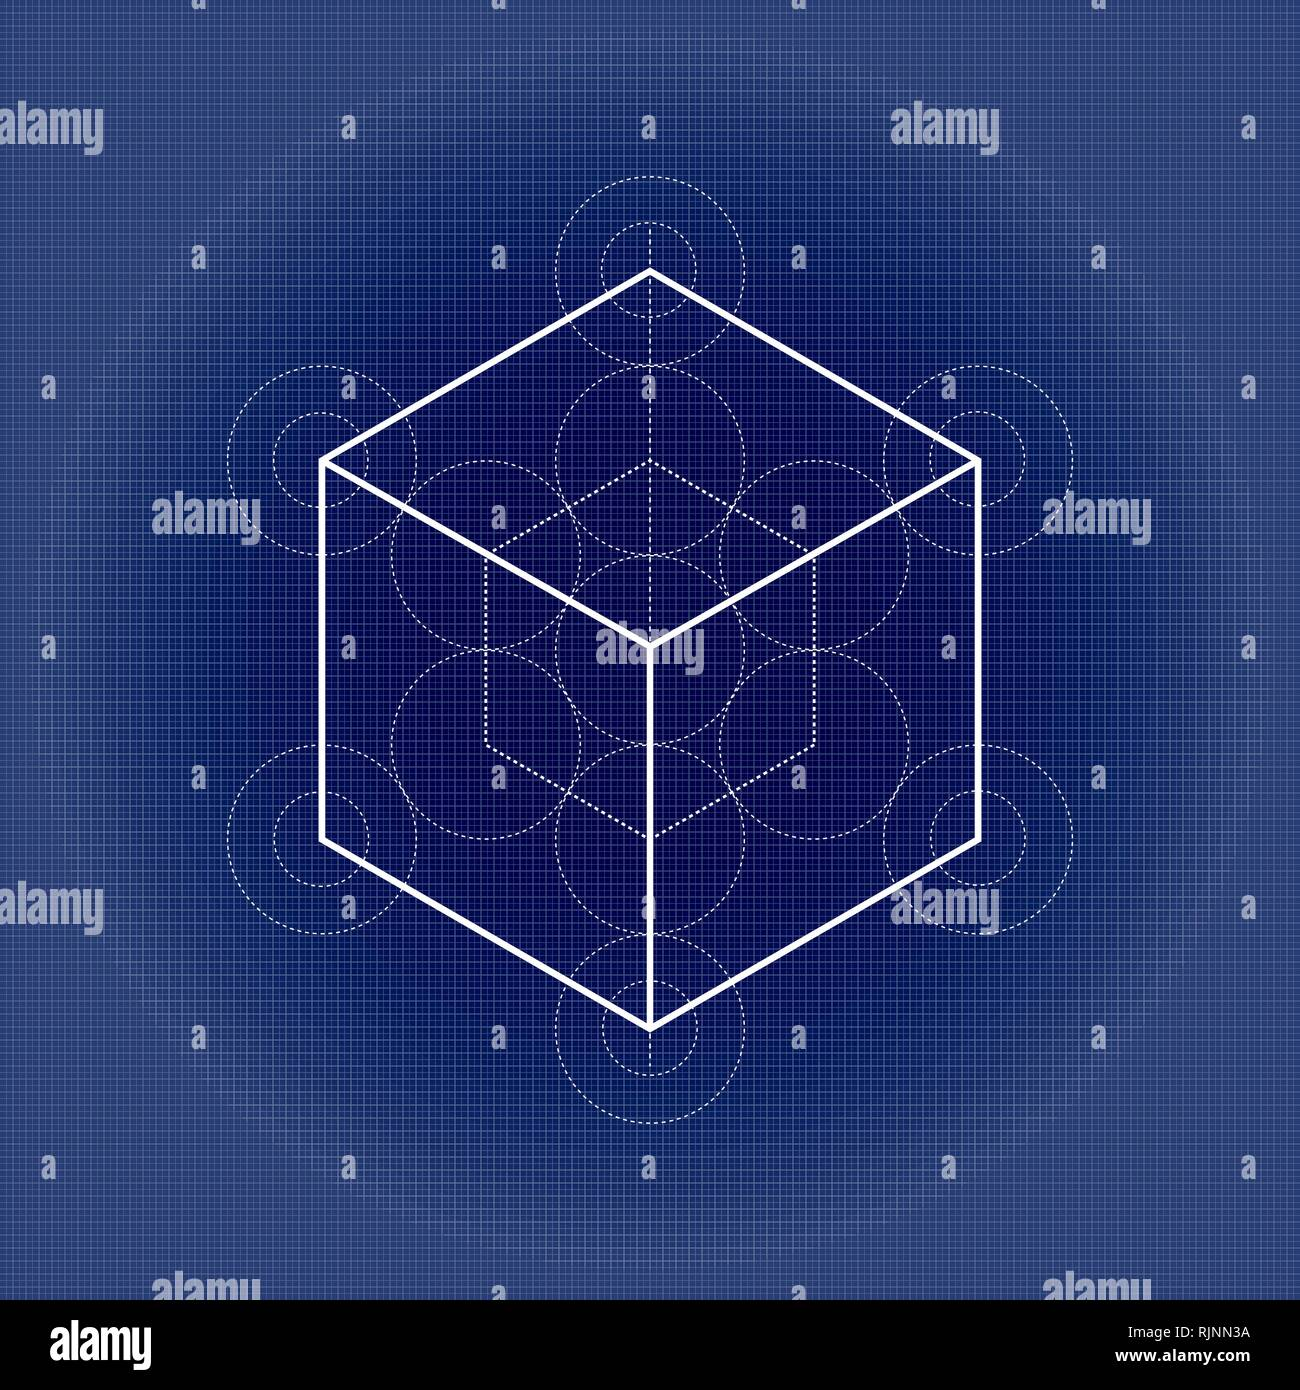 Hexahedron from Metatrons cube, sacred geometry illustration on technical paper - Stock Image